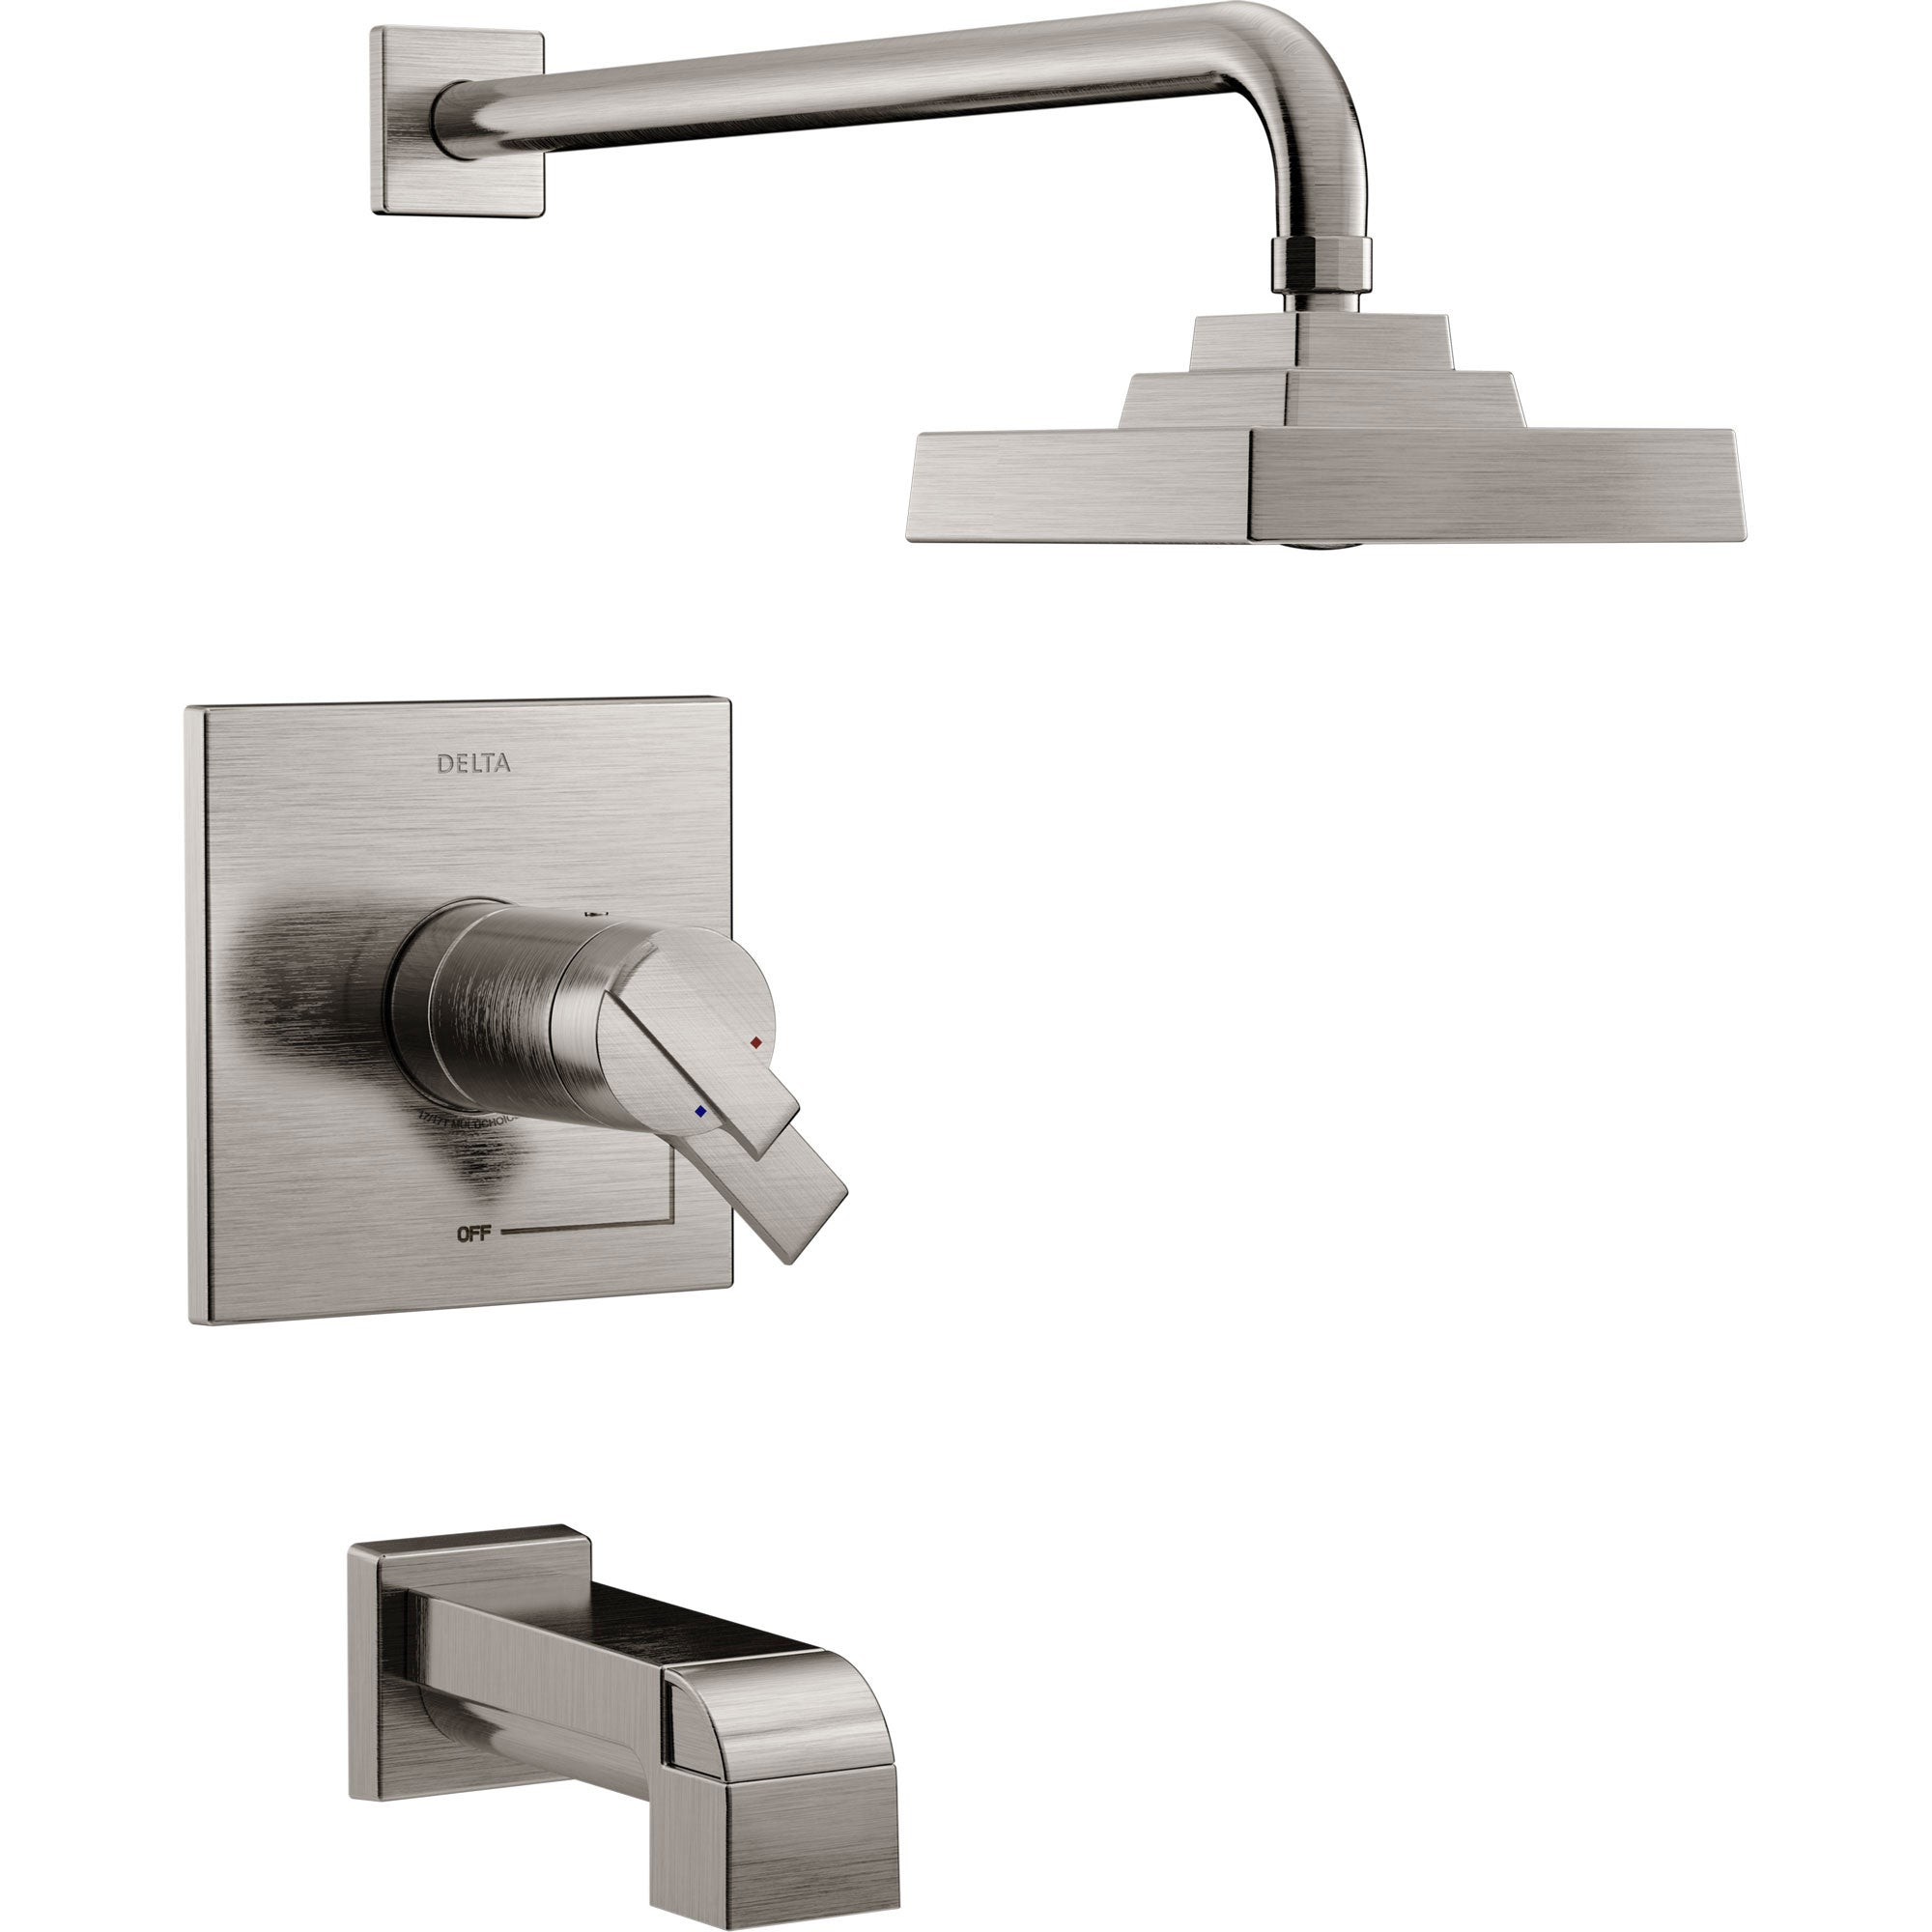 Delta Ara Modern Stainless Steel Finish TempAssure 17T Tub and Shower Combination Faucet with Dual Temperature and Pressure Control INCLUDES Rough-in Valve D1100V